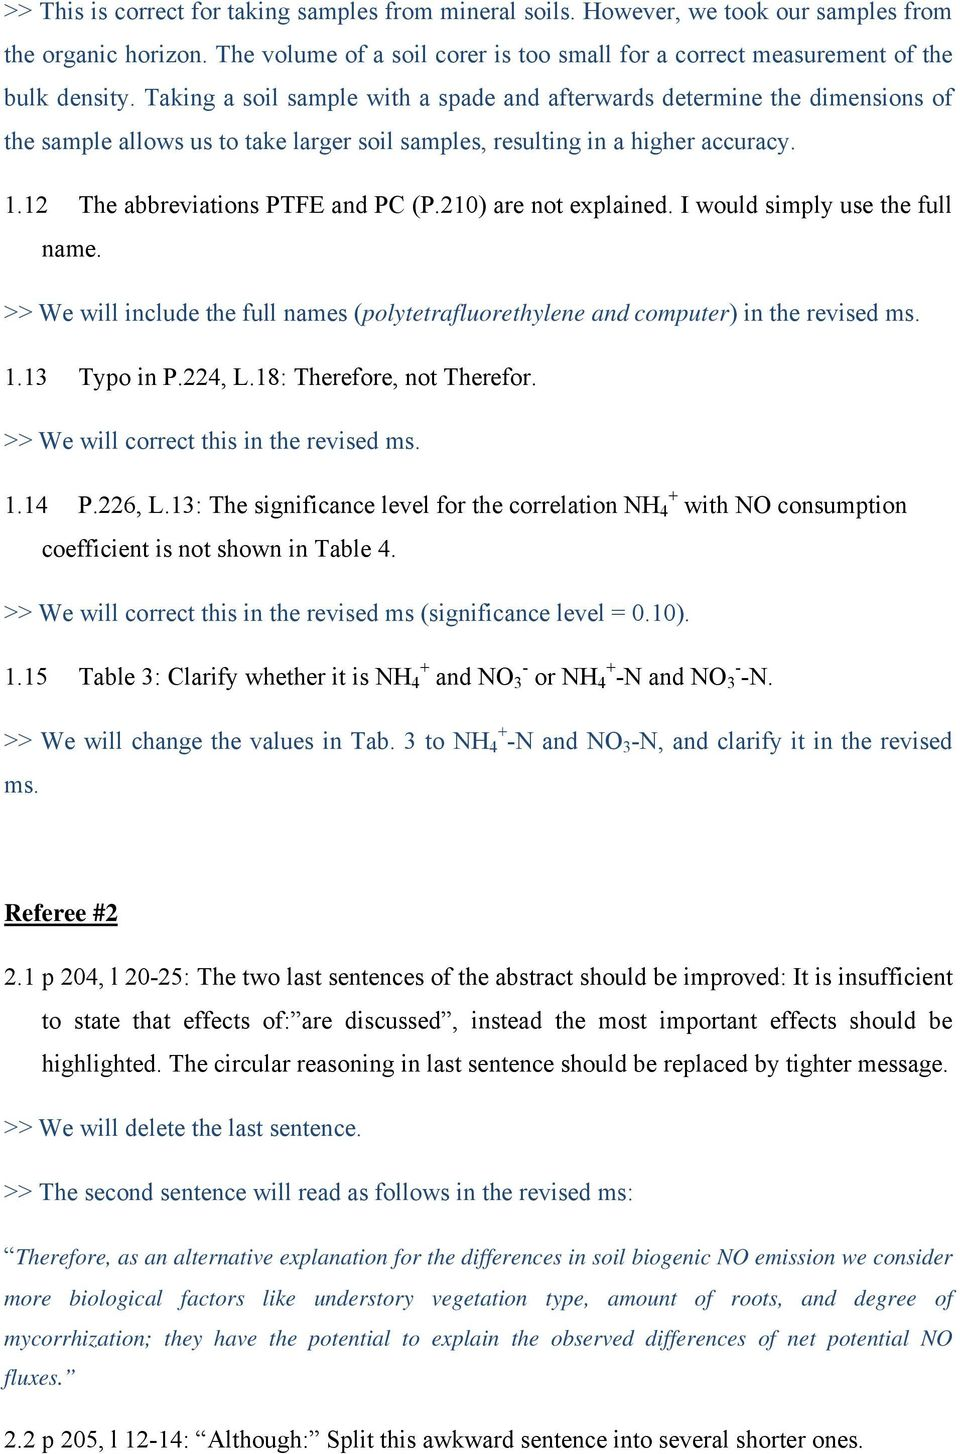 210) are not explained. I would simply use the full name. >> We will include the full names (polytetrafluorethylene and computer) in the revised ms. 1.13 Typo in P.224, L.18: Therefore, not Therefor.